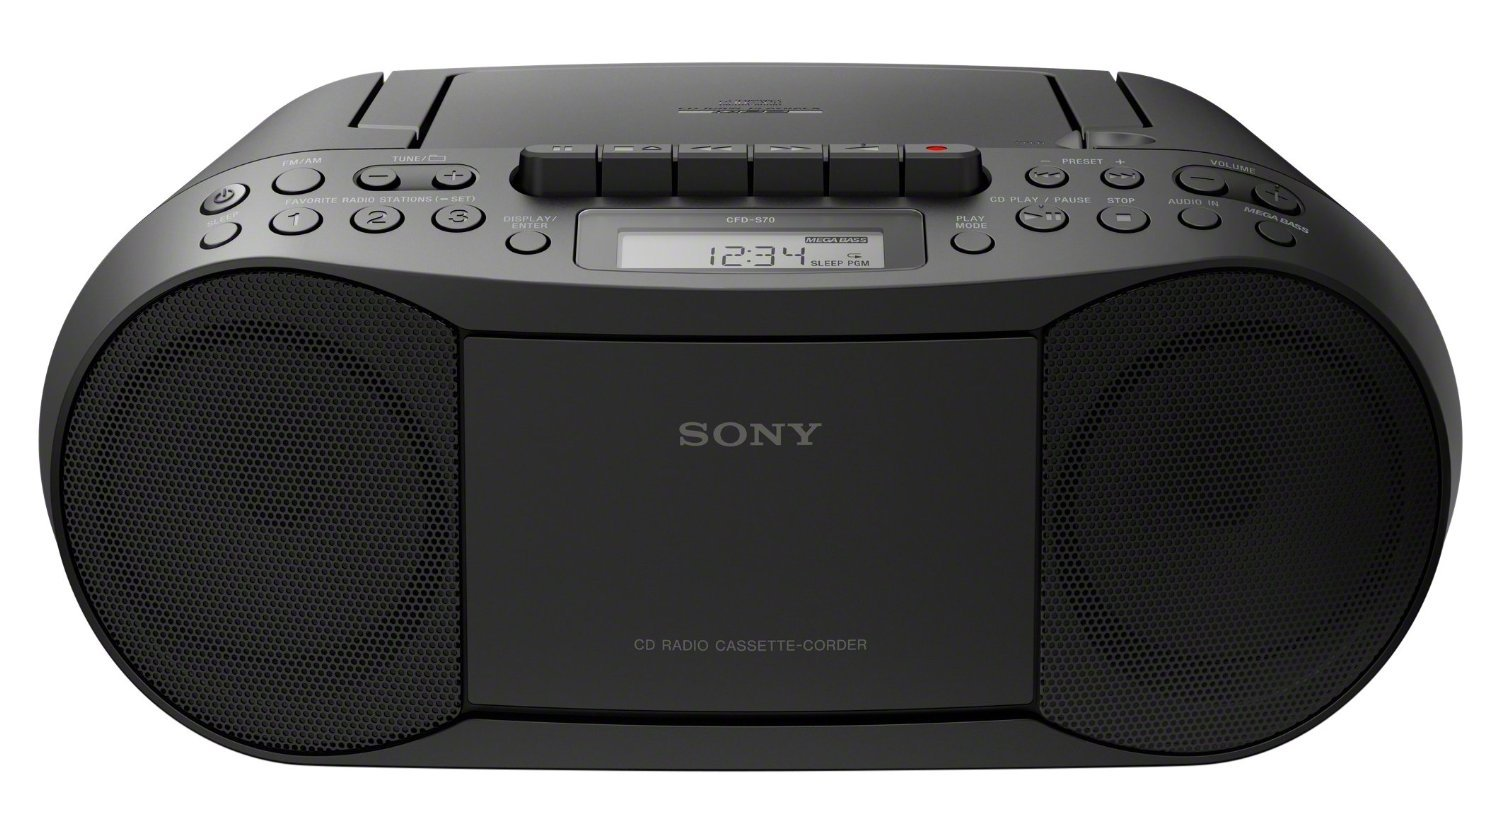 SONY CFD-S70 Portable CD Cassette Boombox (Certified Refurbished)